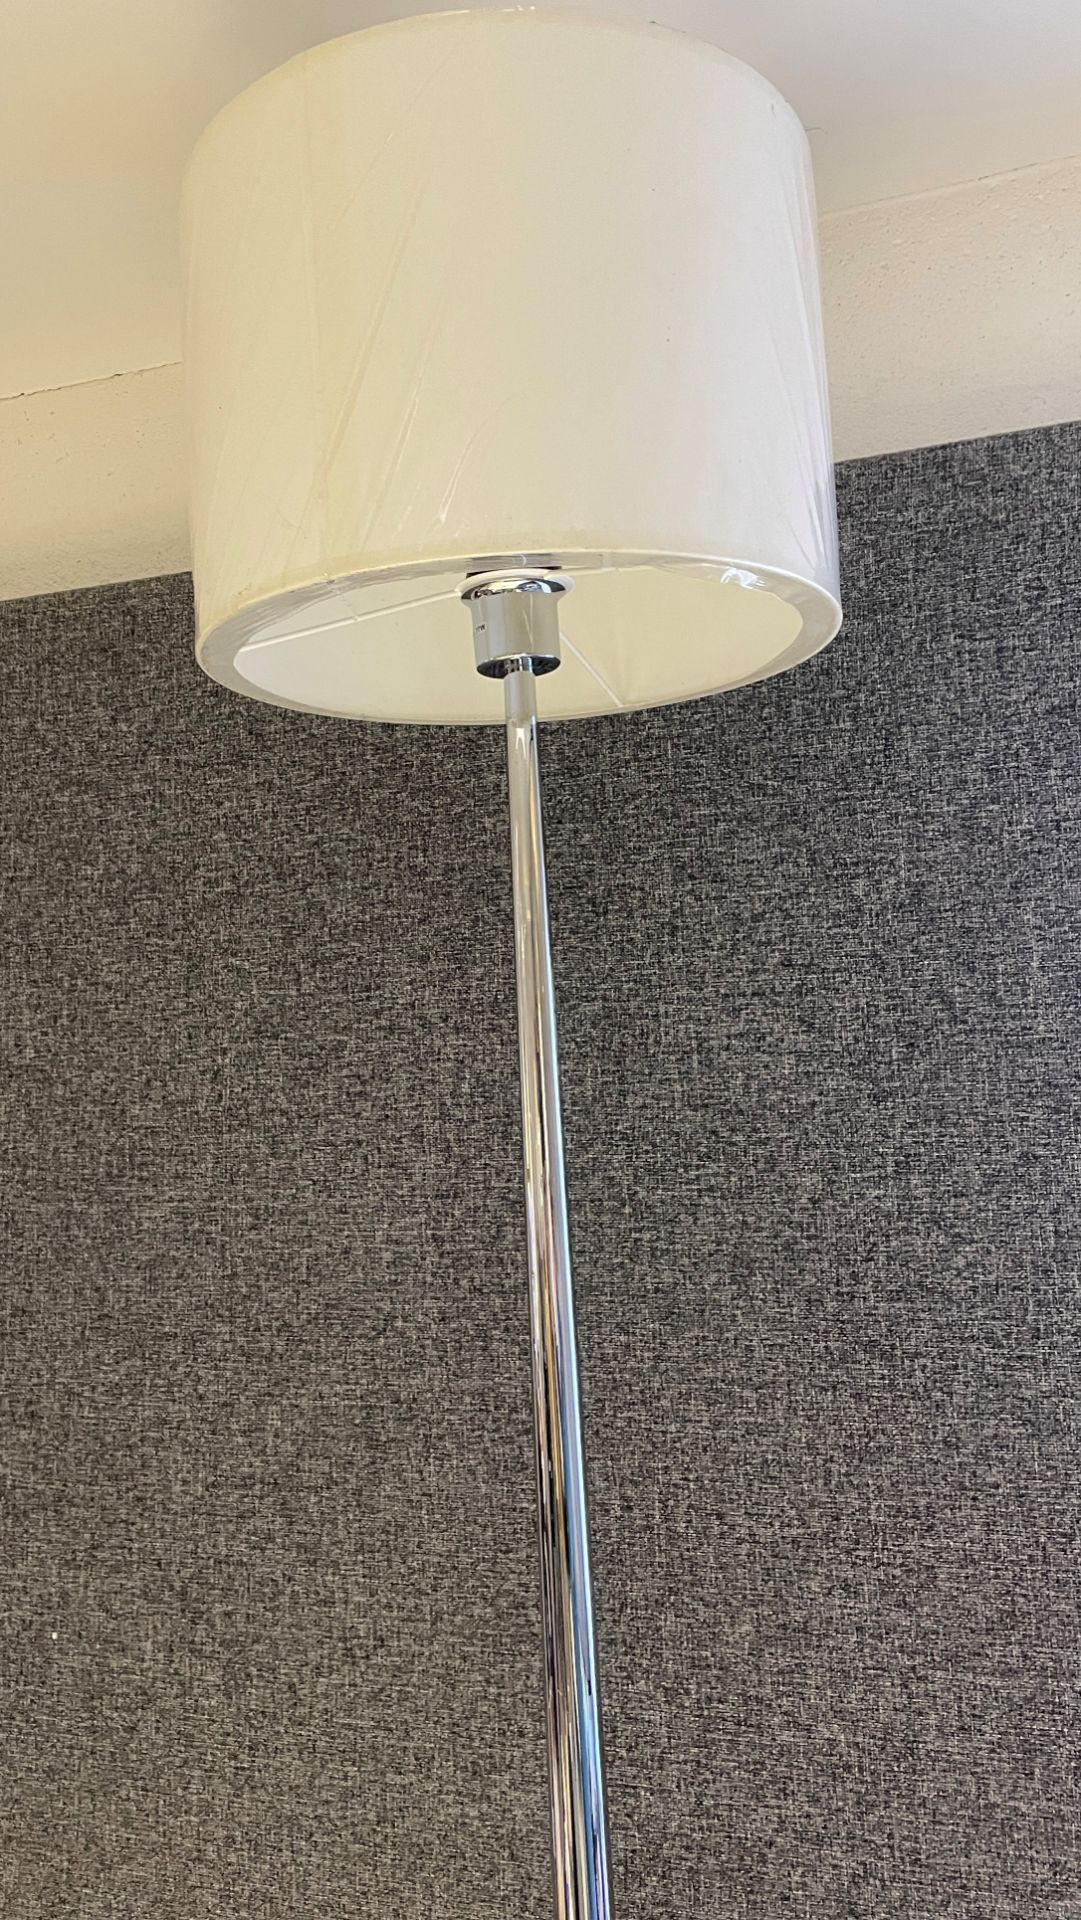 1 x Chelsom Polished Chrome Stem Floor Lamp height 155cm with Cream 31cm round shade - Ref: CHL198 - Image 3 of 10